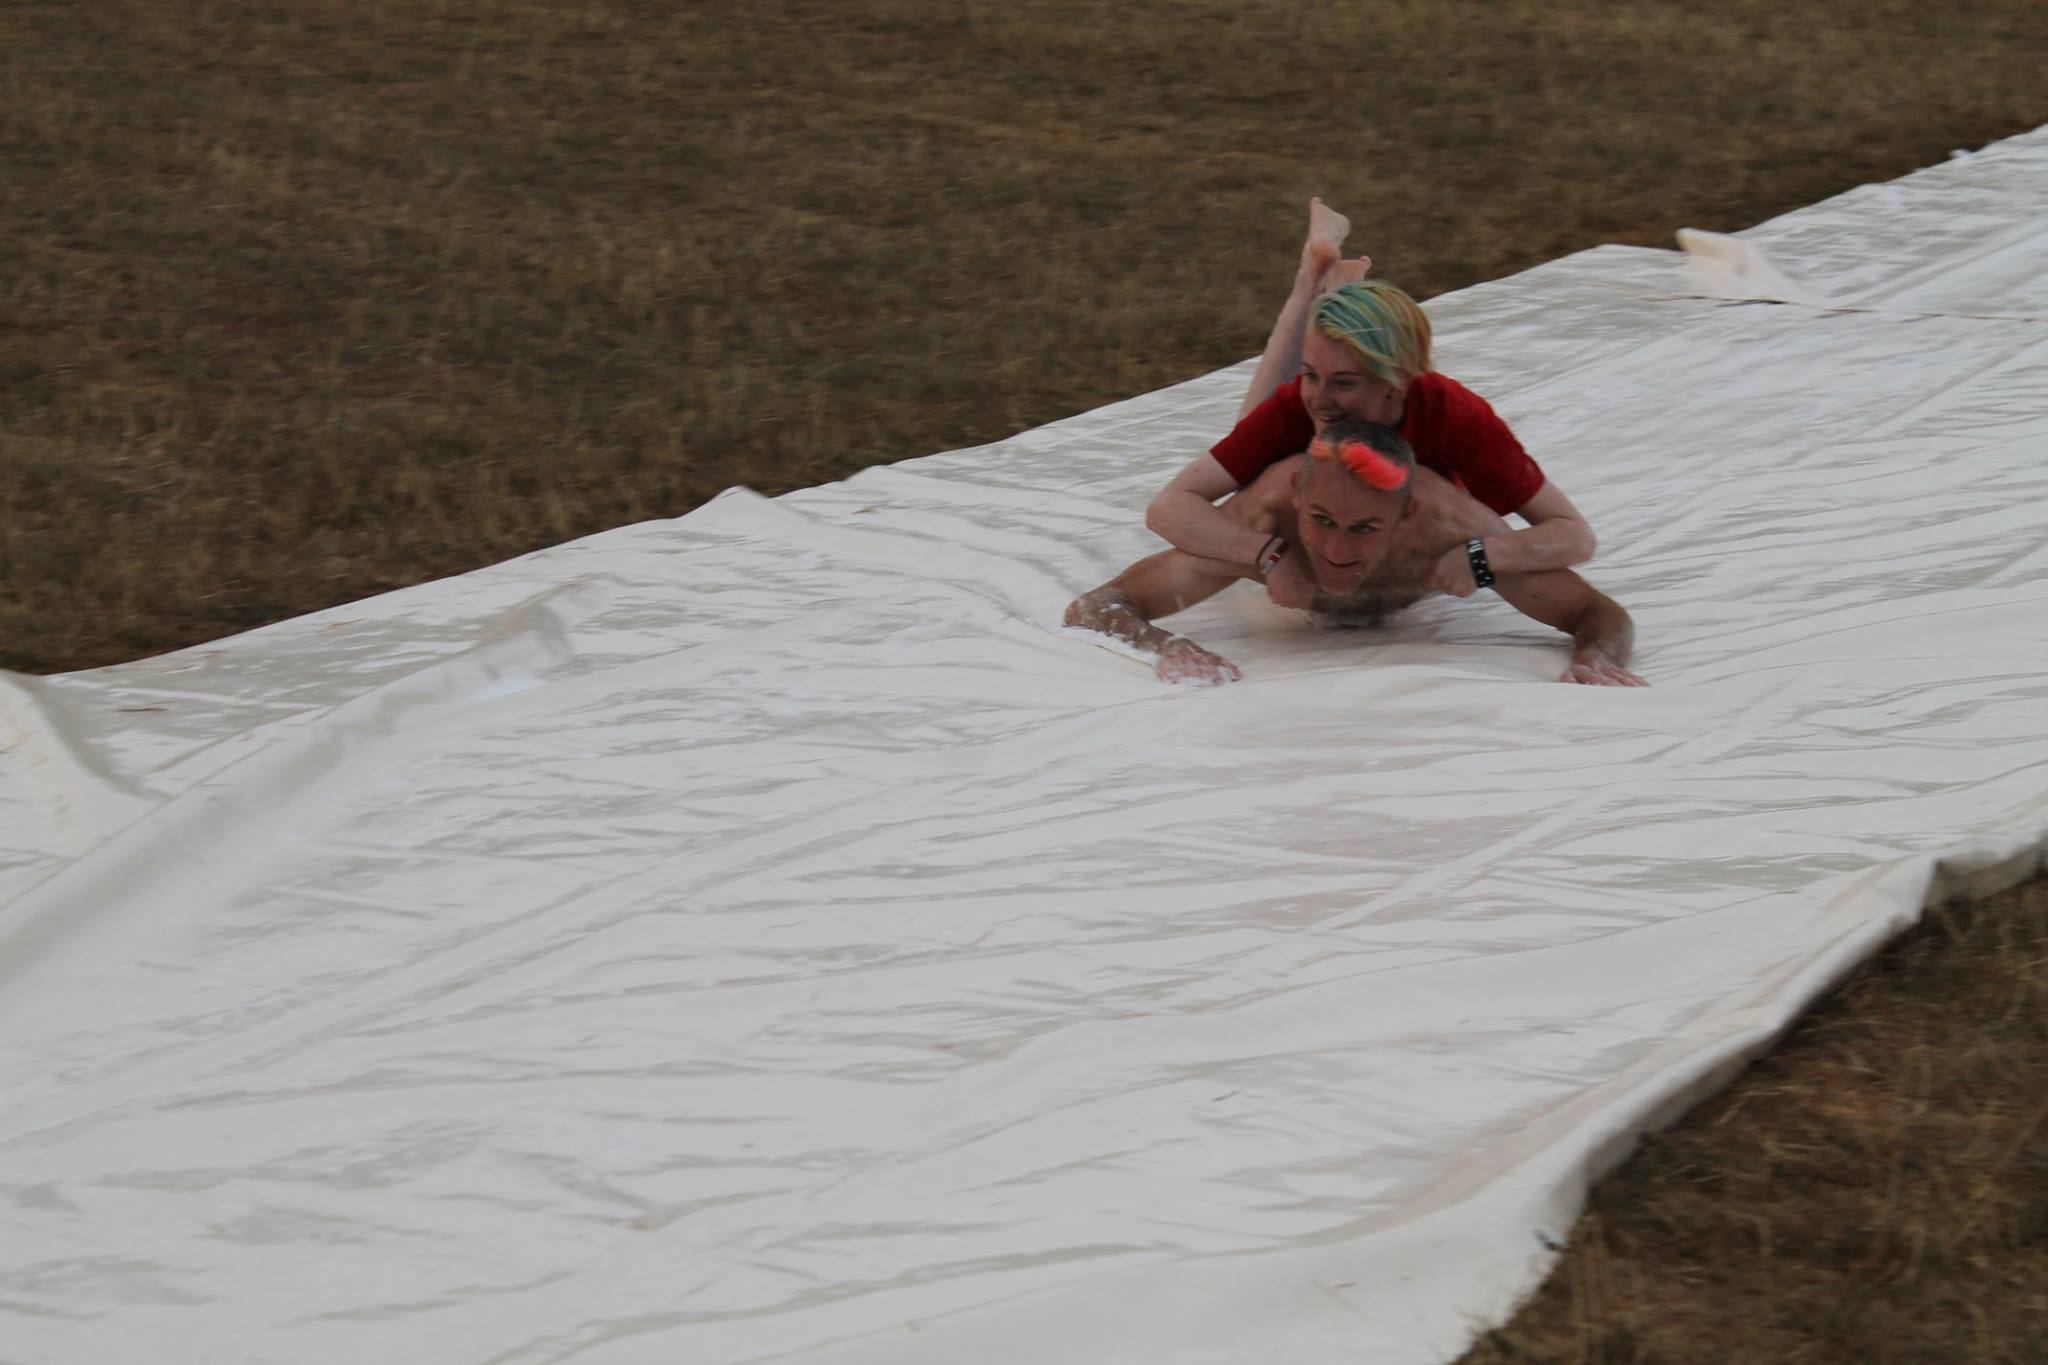 Tweedy & Willow on the slip and slide by Sharon Digweed